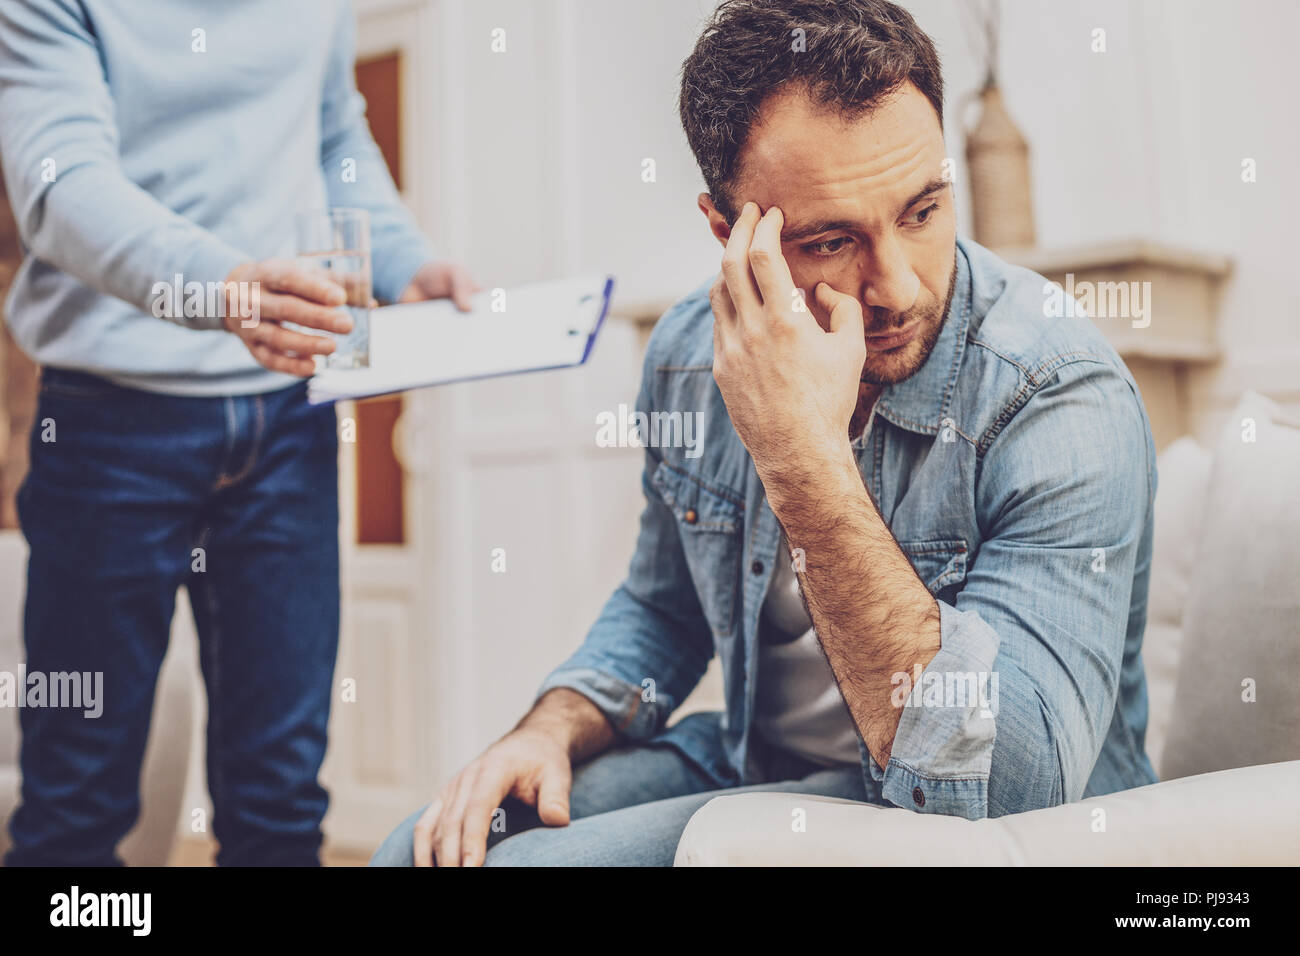 Unhappy cheerless man touching his forehead - Stock Image